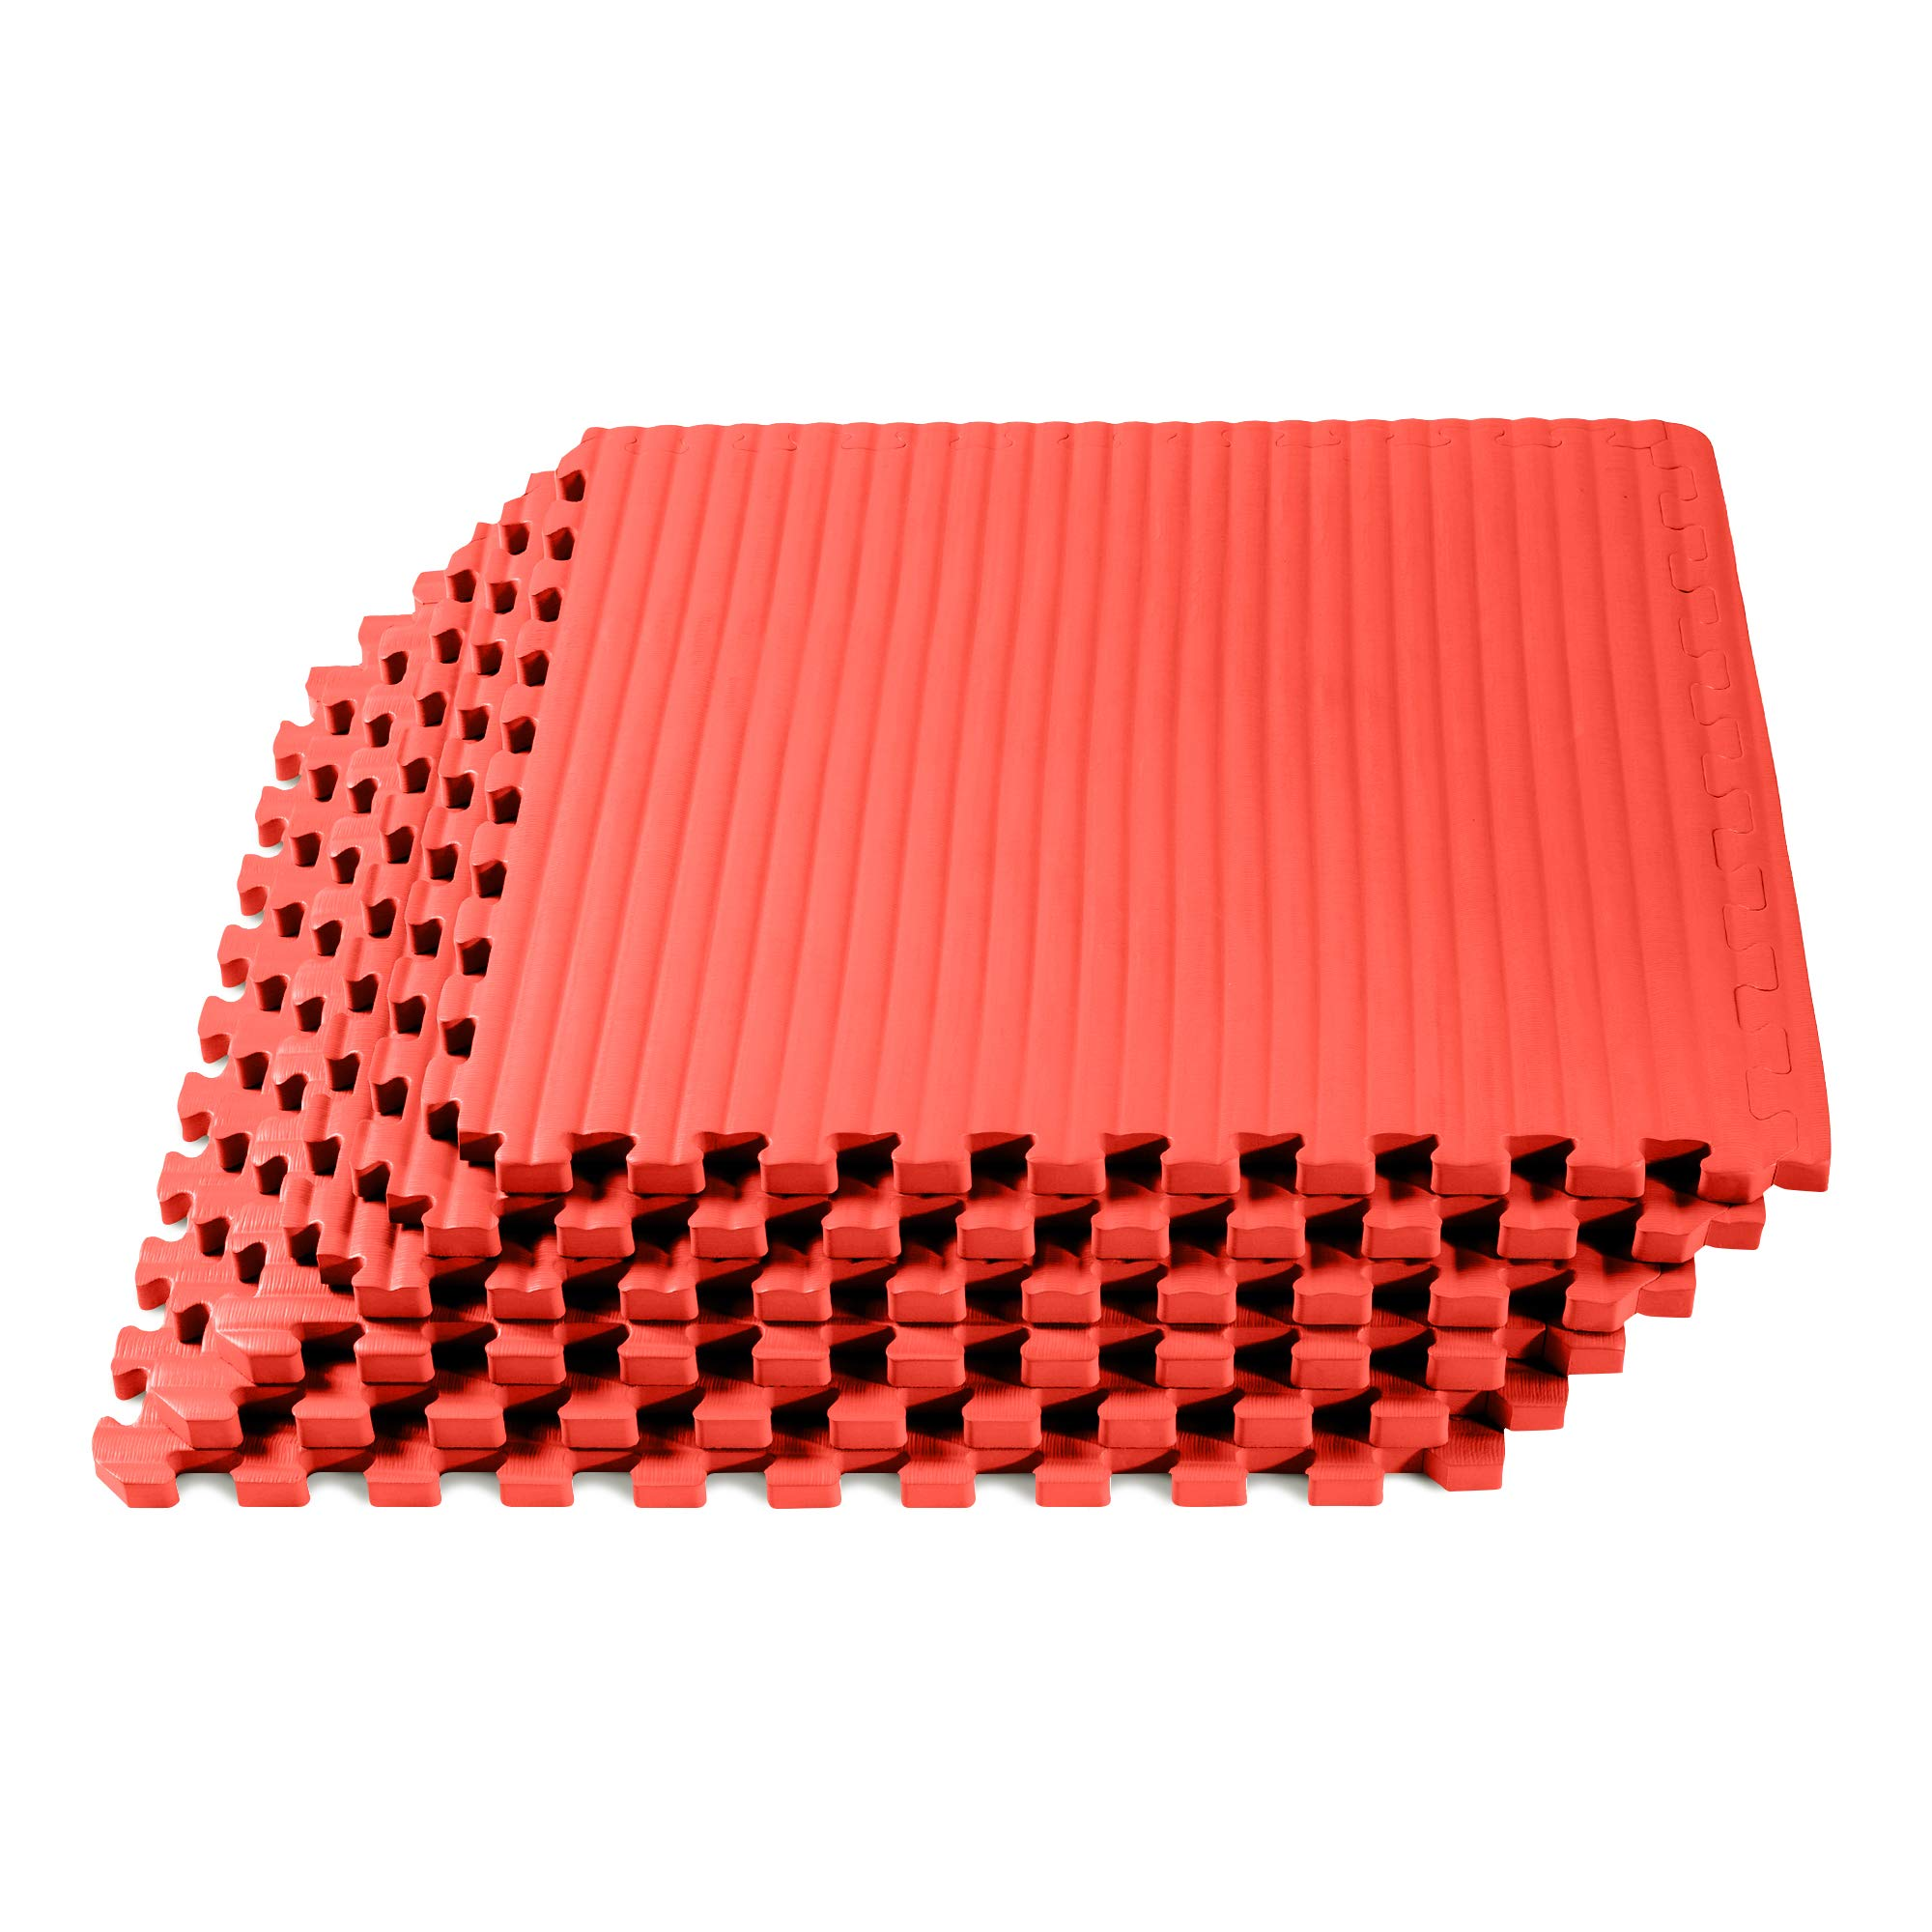 We Sell Mats Martial Arts & MMA Workout Mat, Tatami Pattern with EVA Foam, Interlocking Floor Tiles Tiles, Anti-Fatigue Support, 24 x 24 x 3/4 inch, Red, 120 Square Feet (30 Tiles)